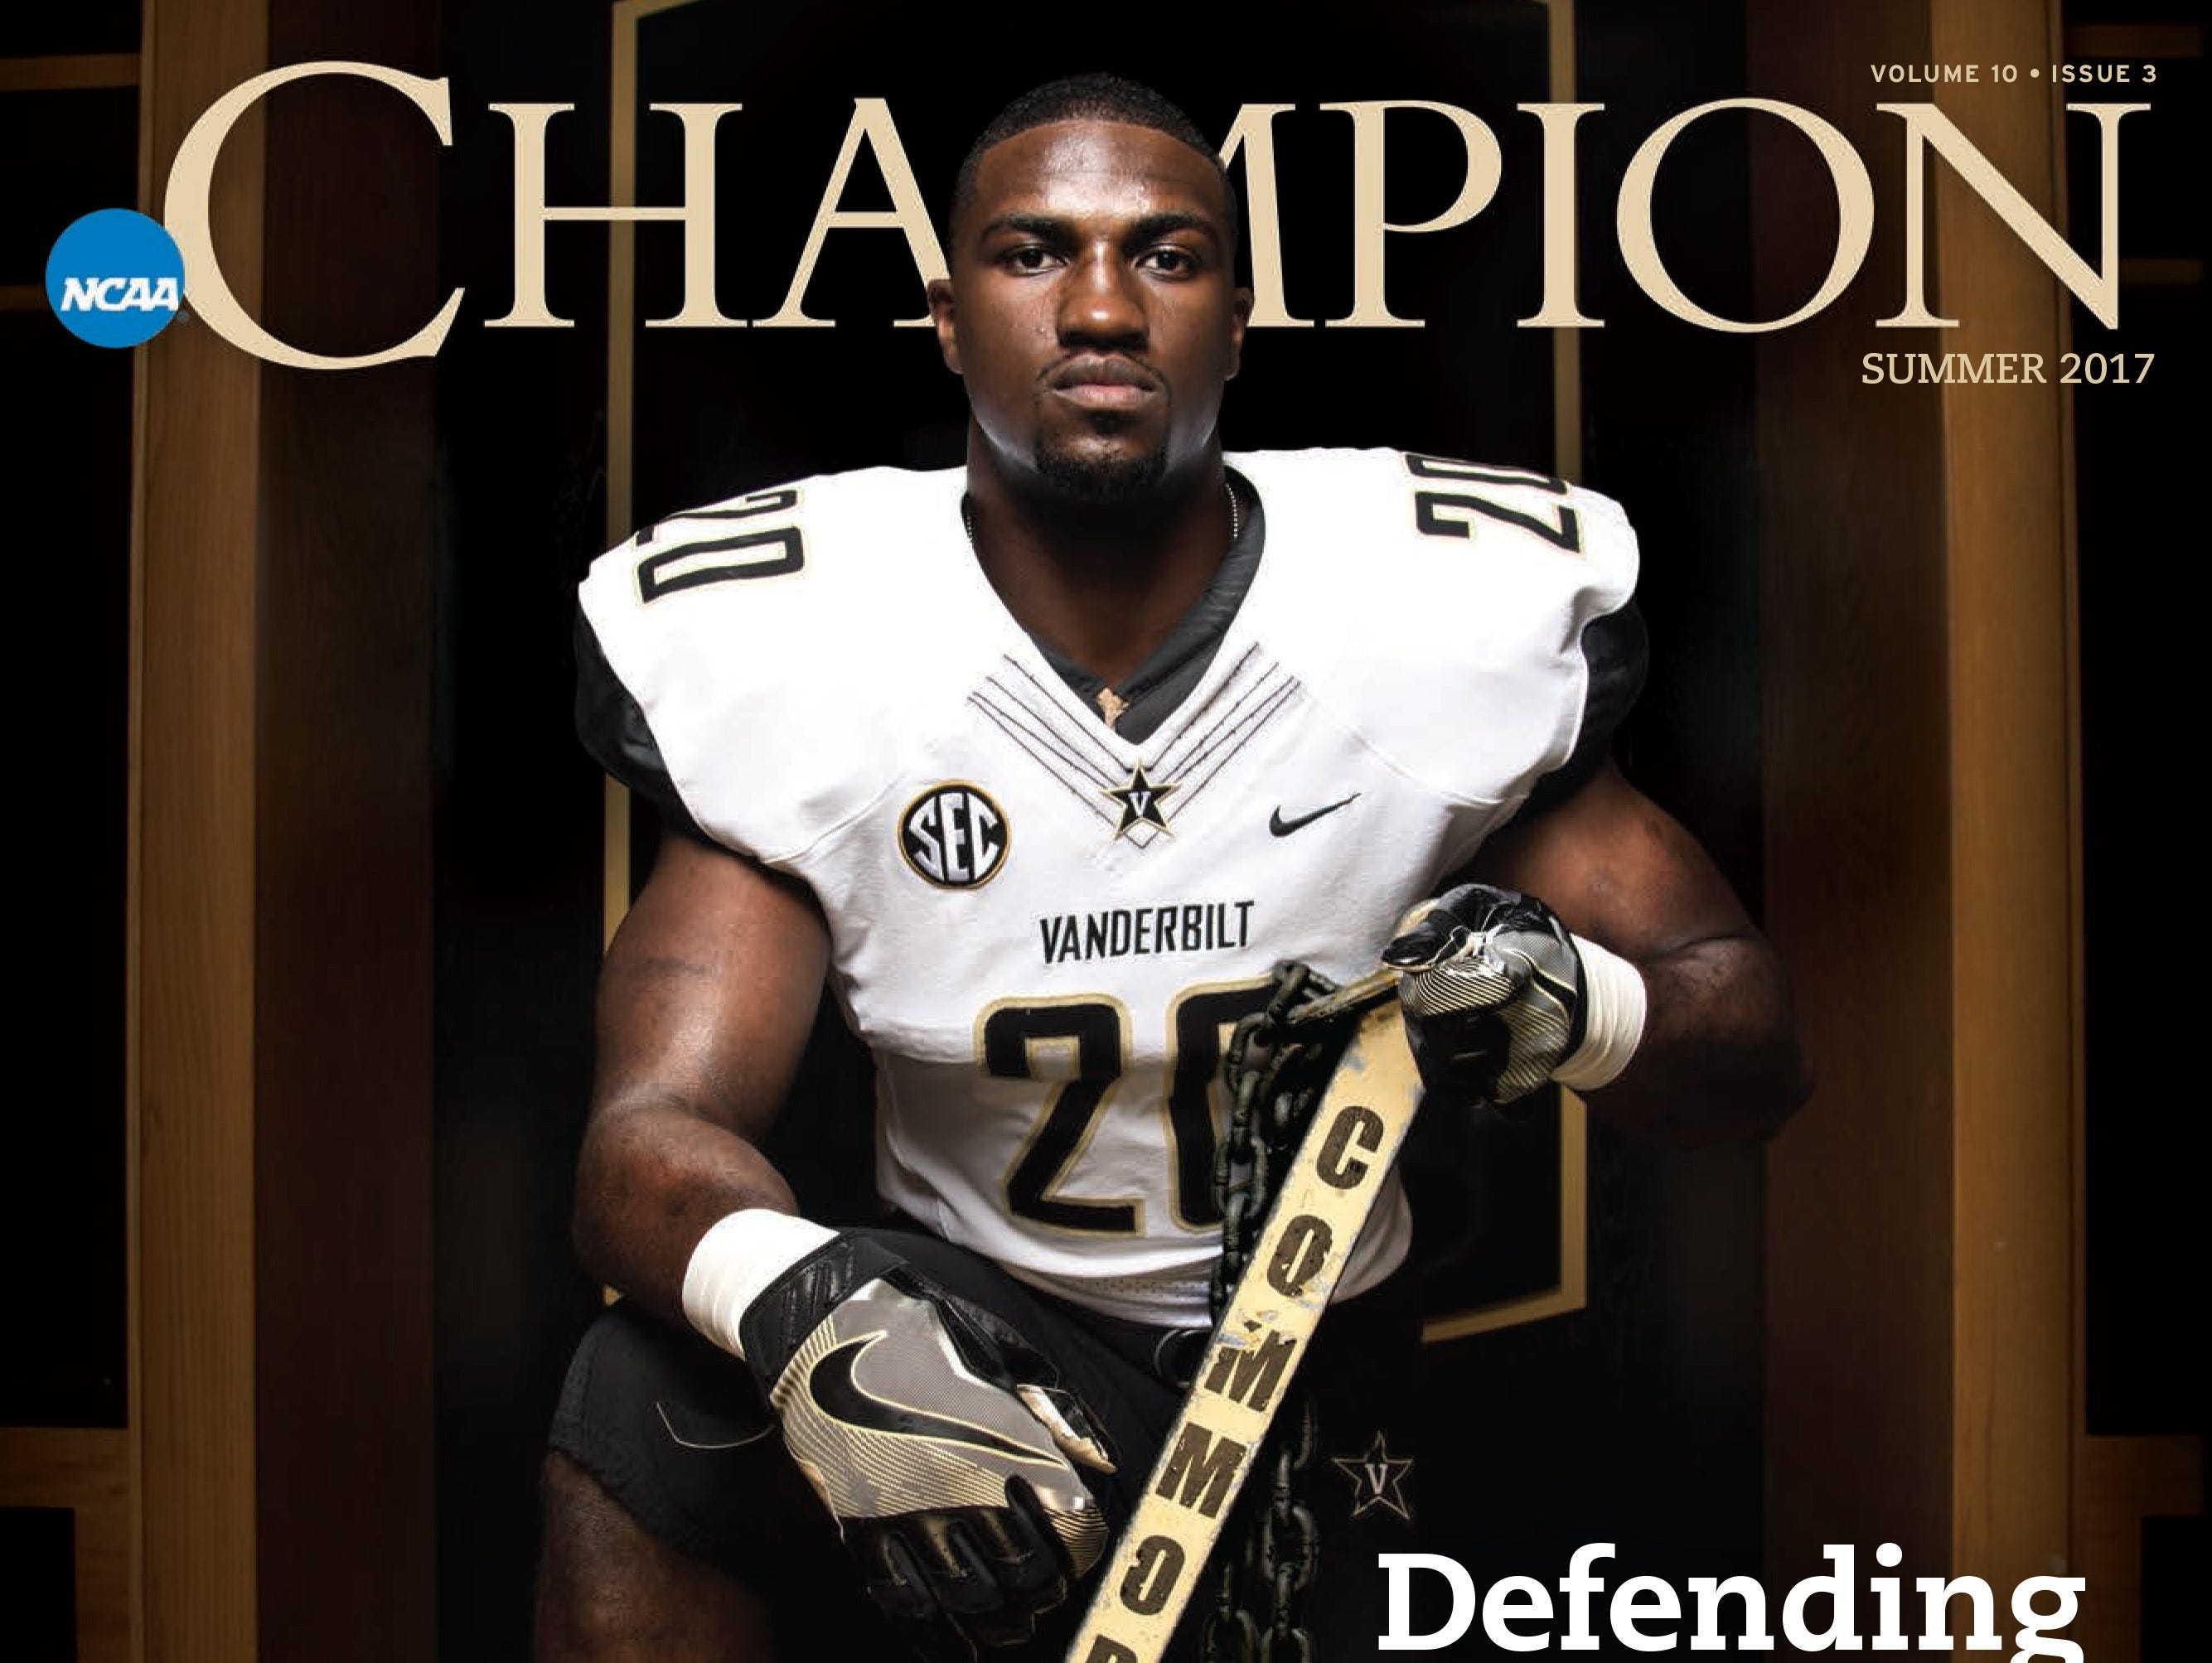 Vanderbilt linebacker Oren Burks is featured on the cover of the current issue of NCAA Champion magazine.